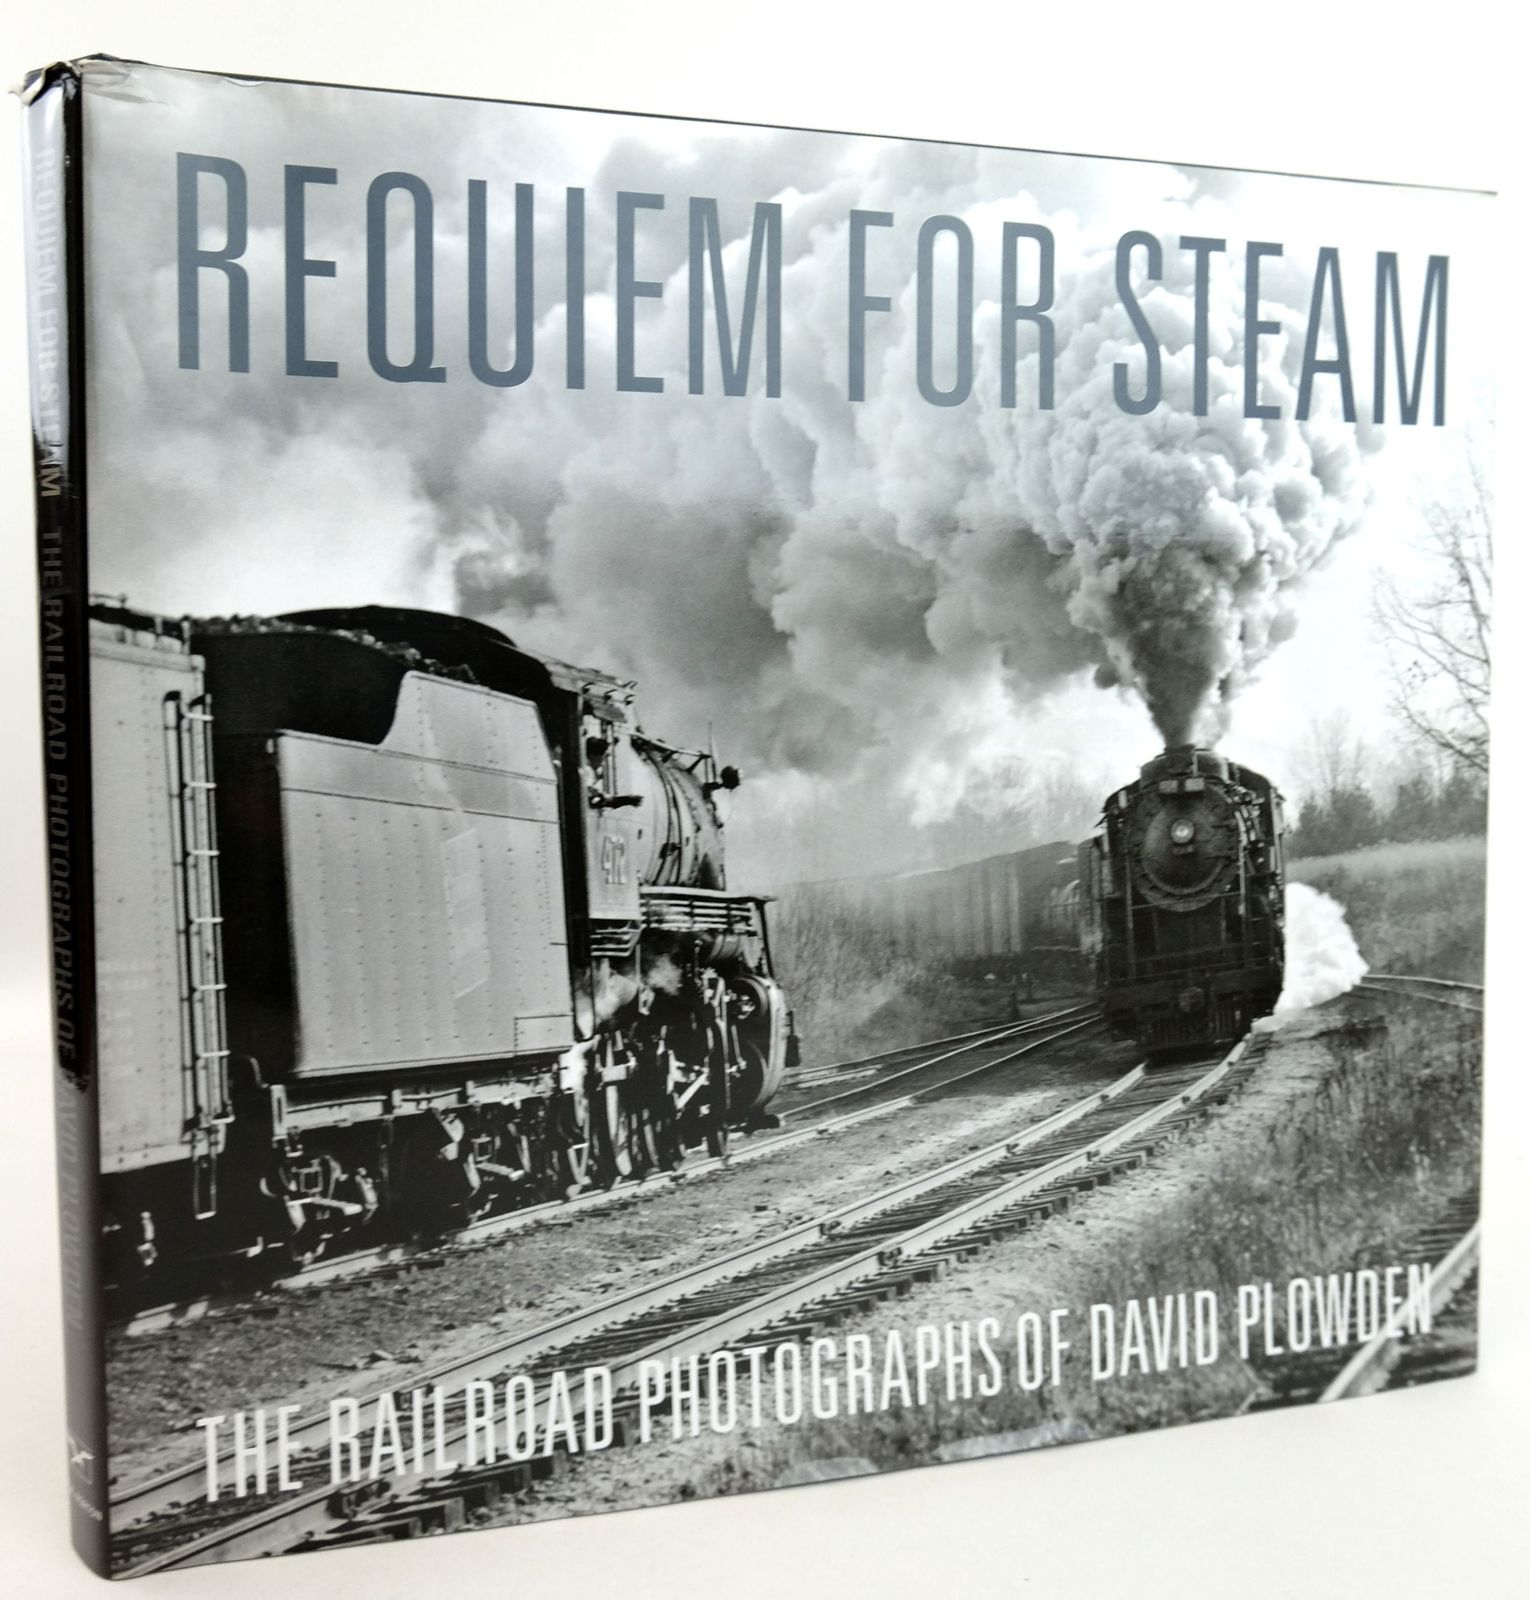 Photo of REQUIEM FOR STEAM: THE RAILROAD PHOTOGRAPHS OF DAVID PLOWDEN written by Plowden, David illustrated by Plowden, David published by W.W. Norton & Company Inc. (STOCK CODE: 1819545)  for sale by Stella & Rose's Books